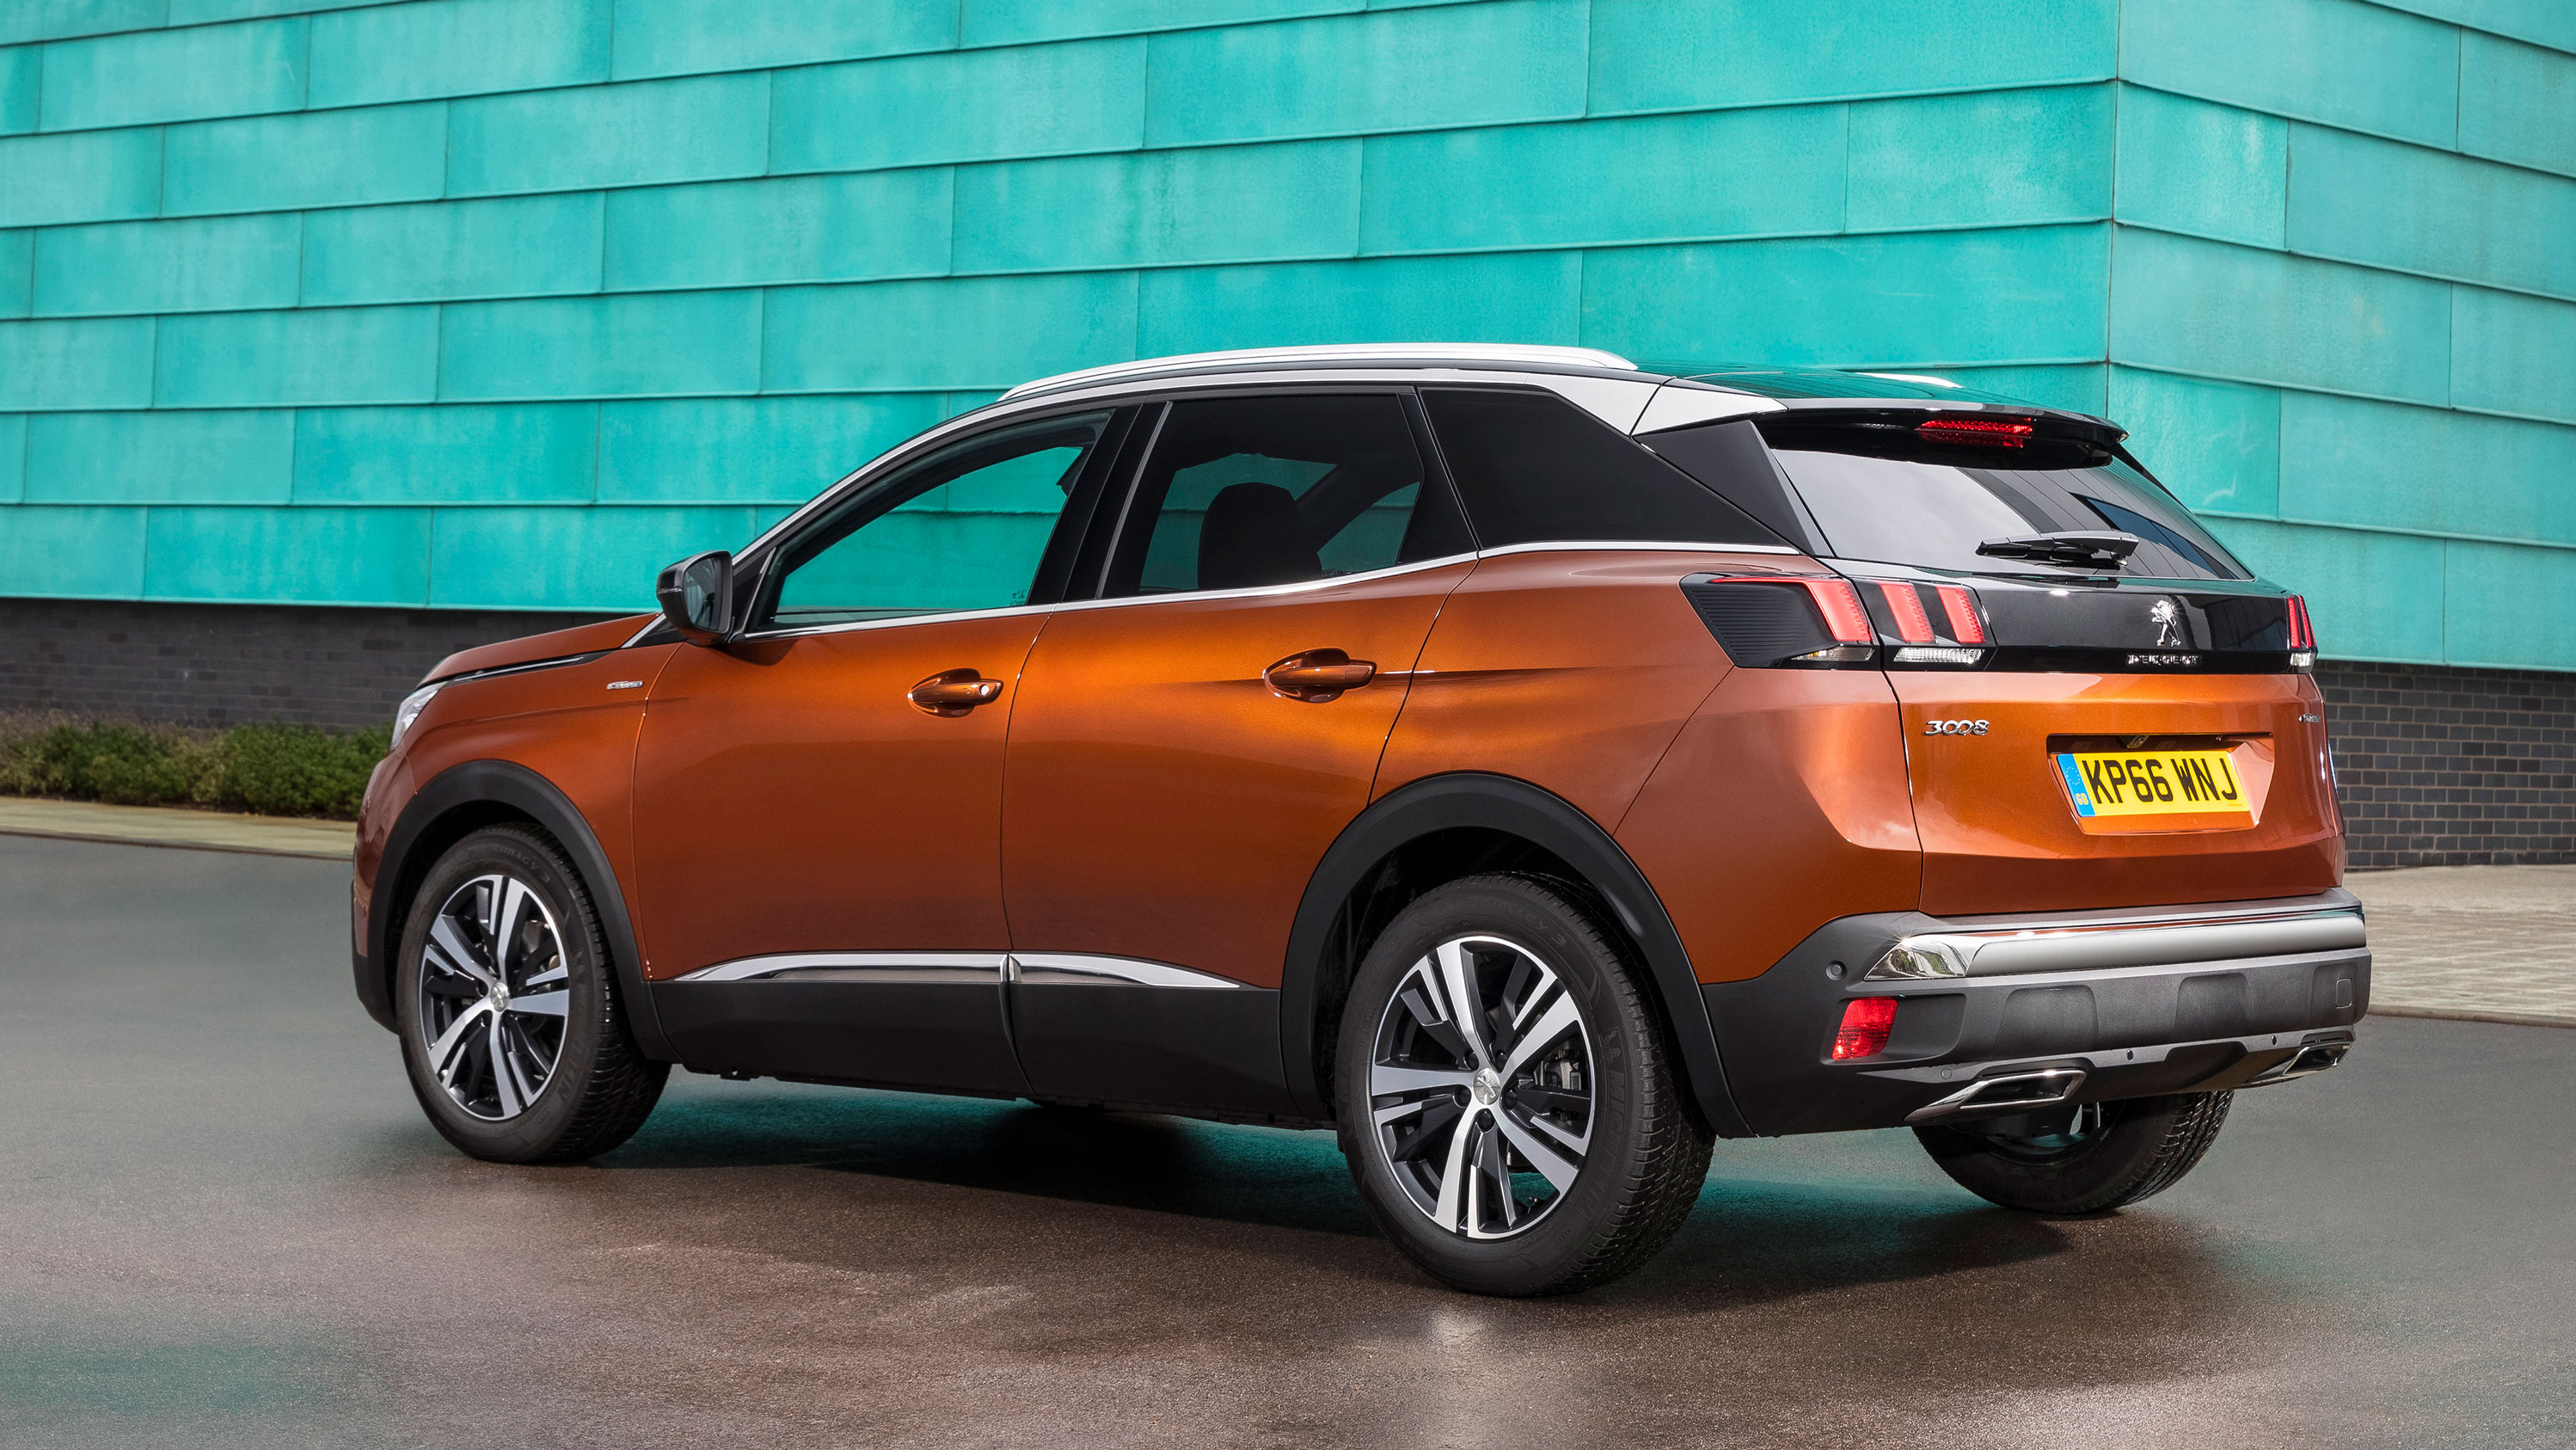 Peugeot 3008 Gt Line Premium Used Cars For Sale On Auto Trader Uk